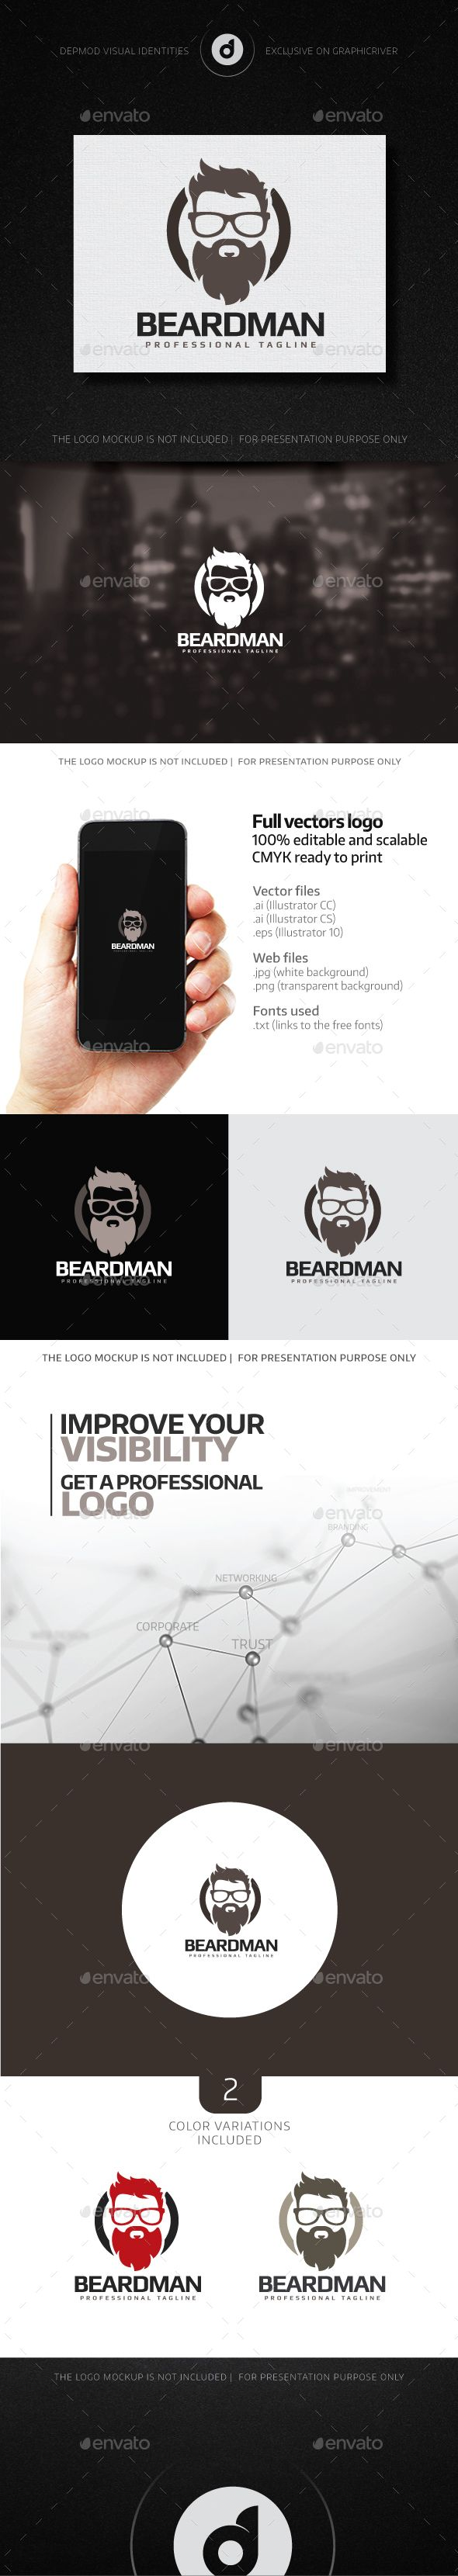 Beard Man Logo Template Vector EPS, AI. Download here: http://graphicriver.net/item/beard-man-logo/13718829?ref=ksioks